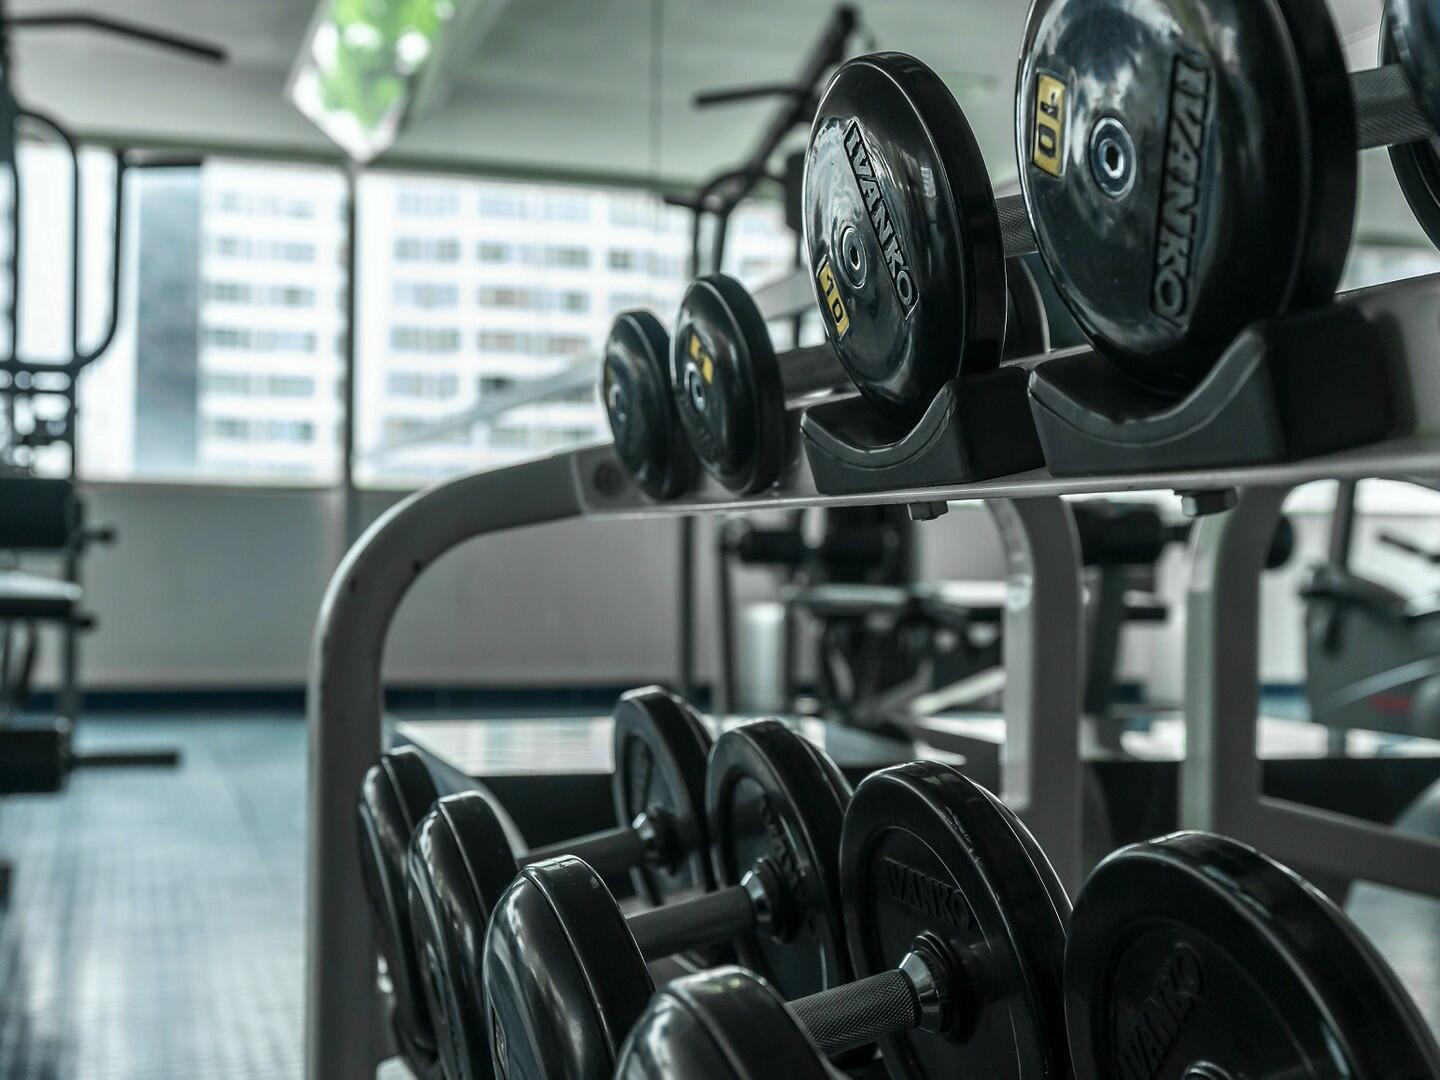 Dumbells racked accordingly in the gym at Dream Midtown NYC